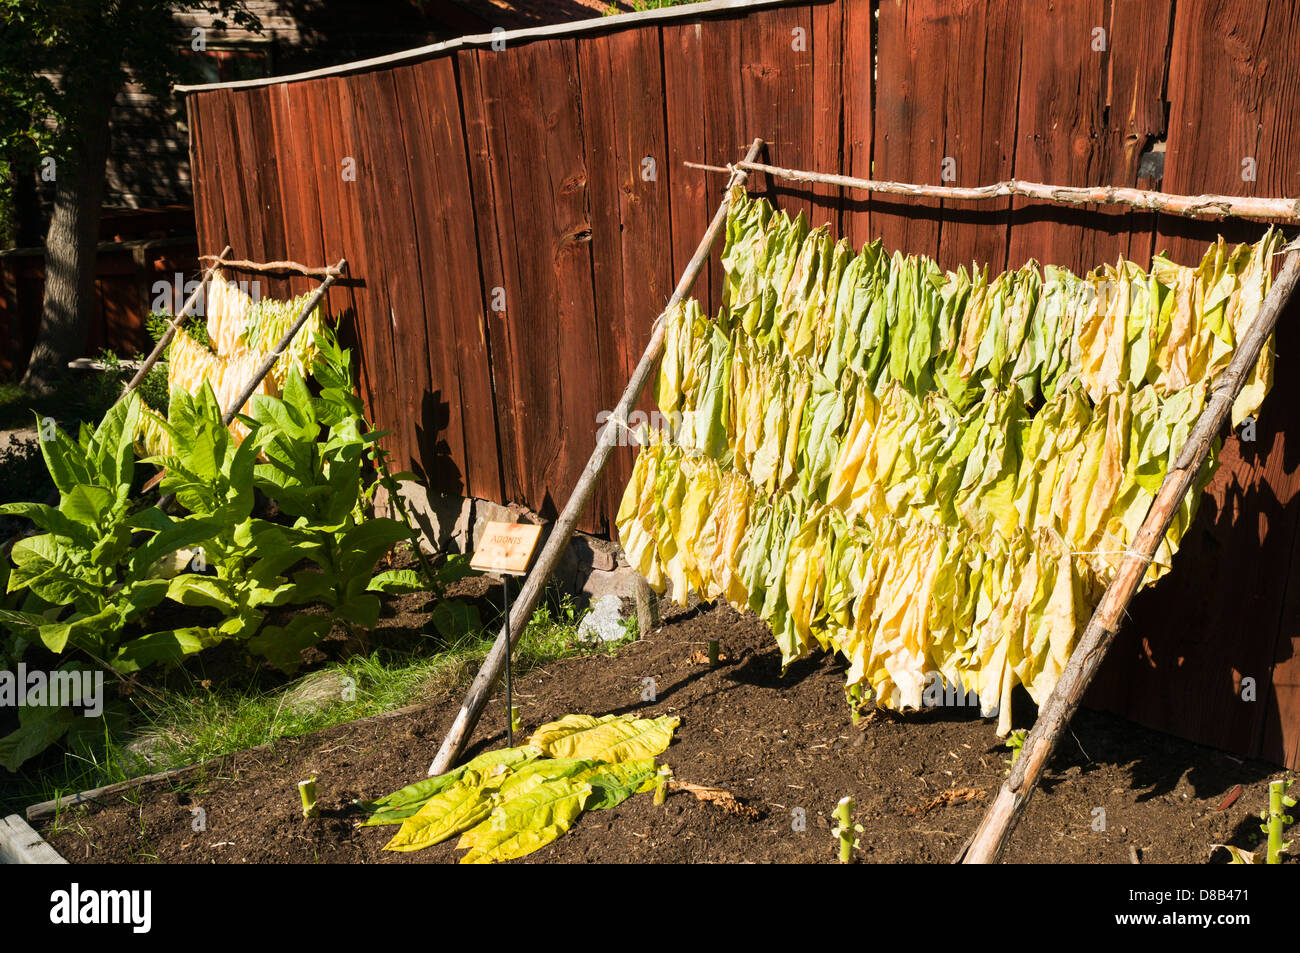 Homegrown tobacco leaves hanging to dry at Skansen open-air museum in Stockholm, Sweden - Stock Image